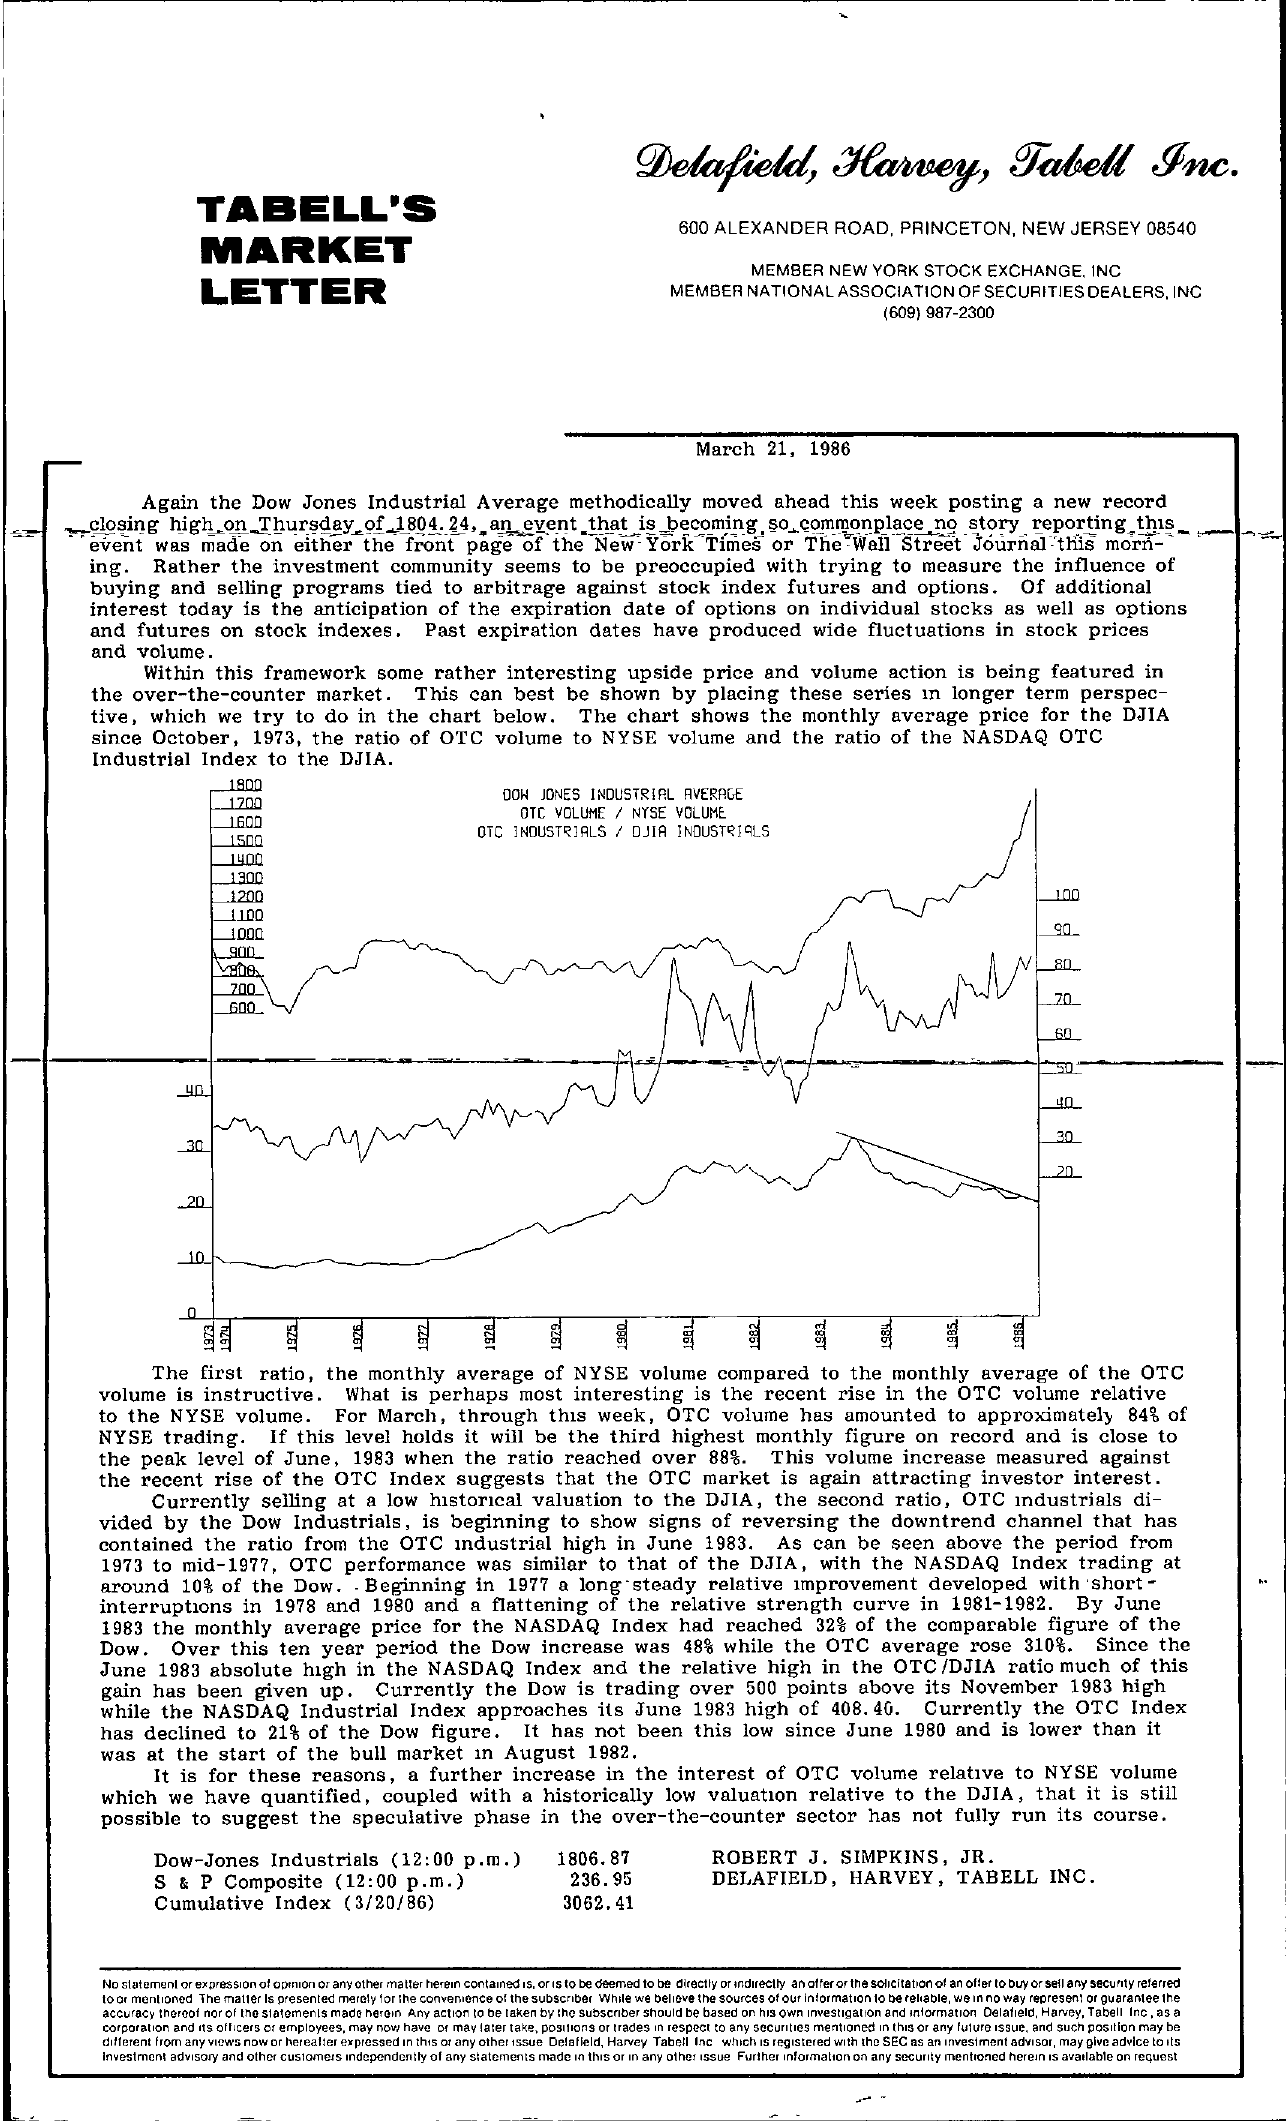 Tabell's Market Letter - March 21, 1986